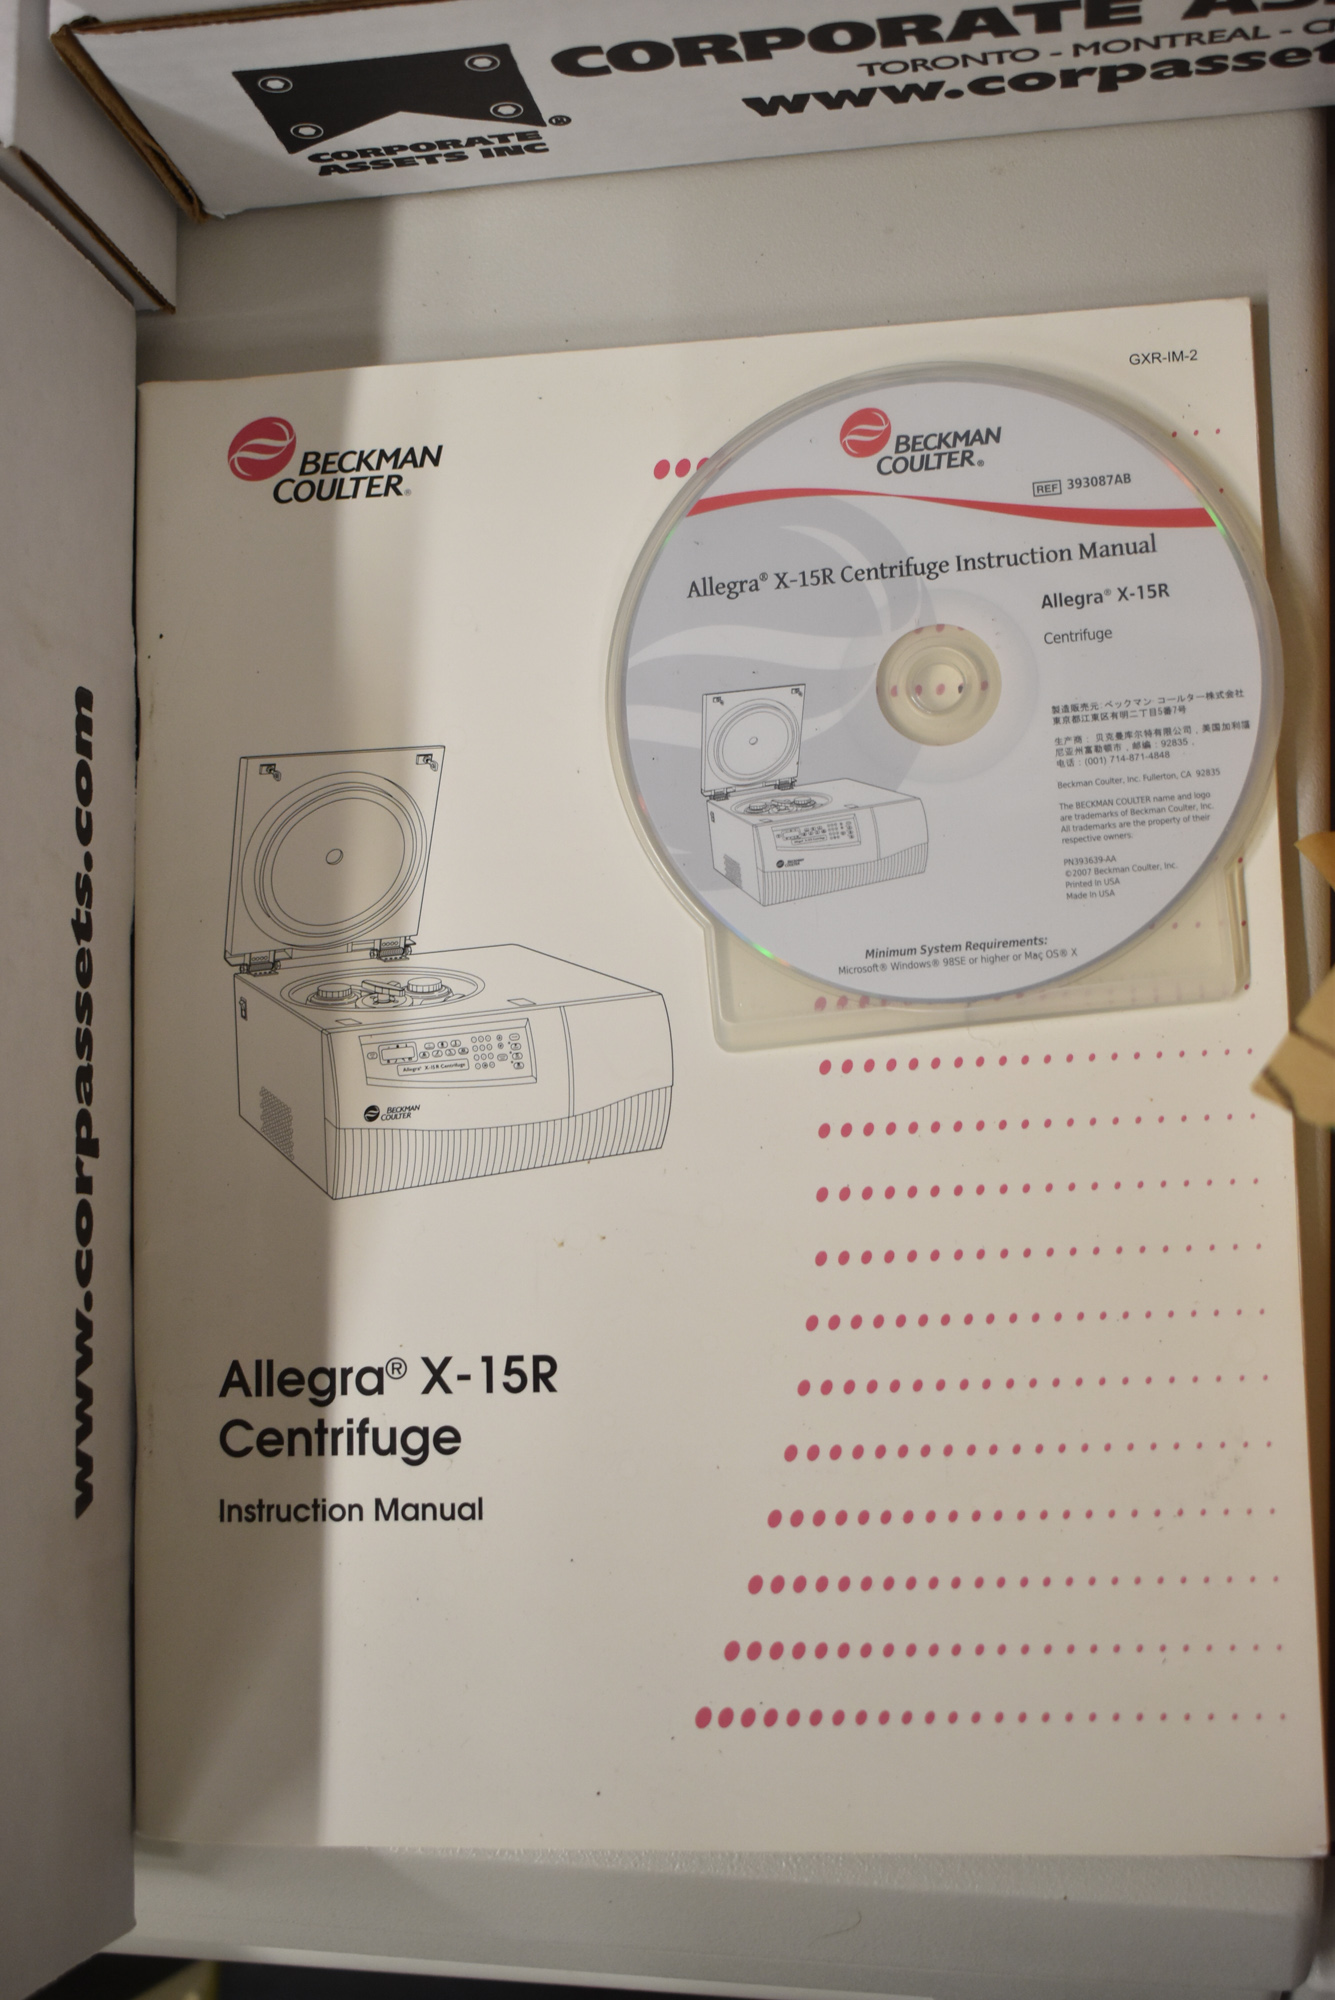 BECKMAN COULTER ALLEGRA X-15R BENCHTOP CENTRIFUGE WITH DIGITAL PROGRAMMABLE MICROPROCESSOR - Image 14 of 14